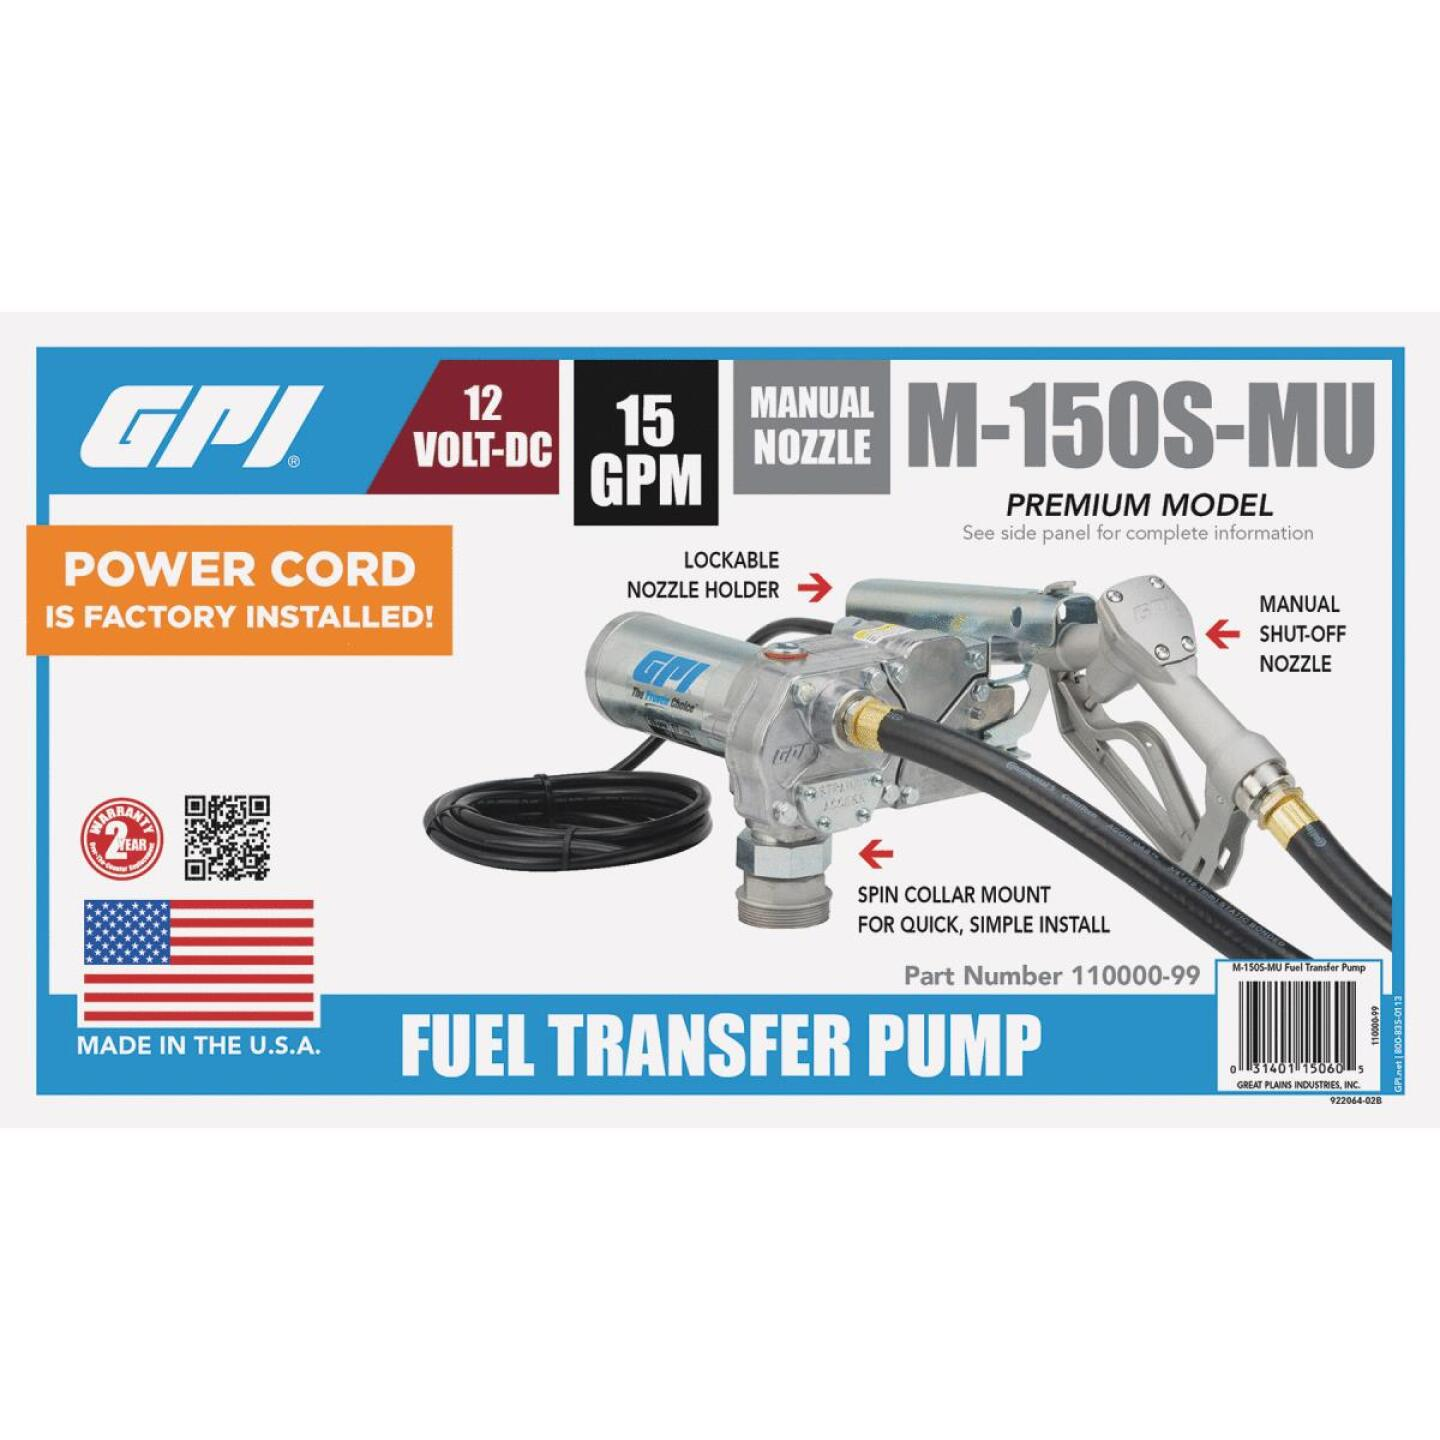 GPI 12V DC, 15 GPM Manual Fuel Transfer Pump Image 3